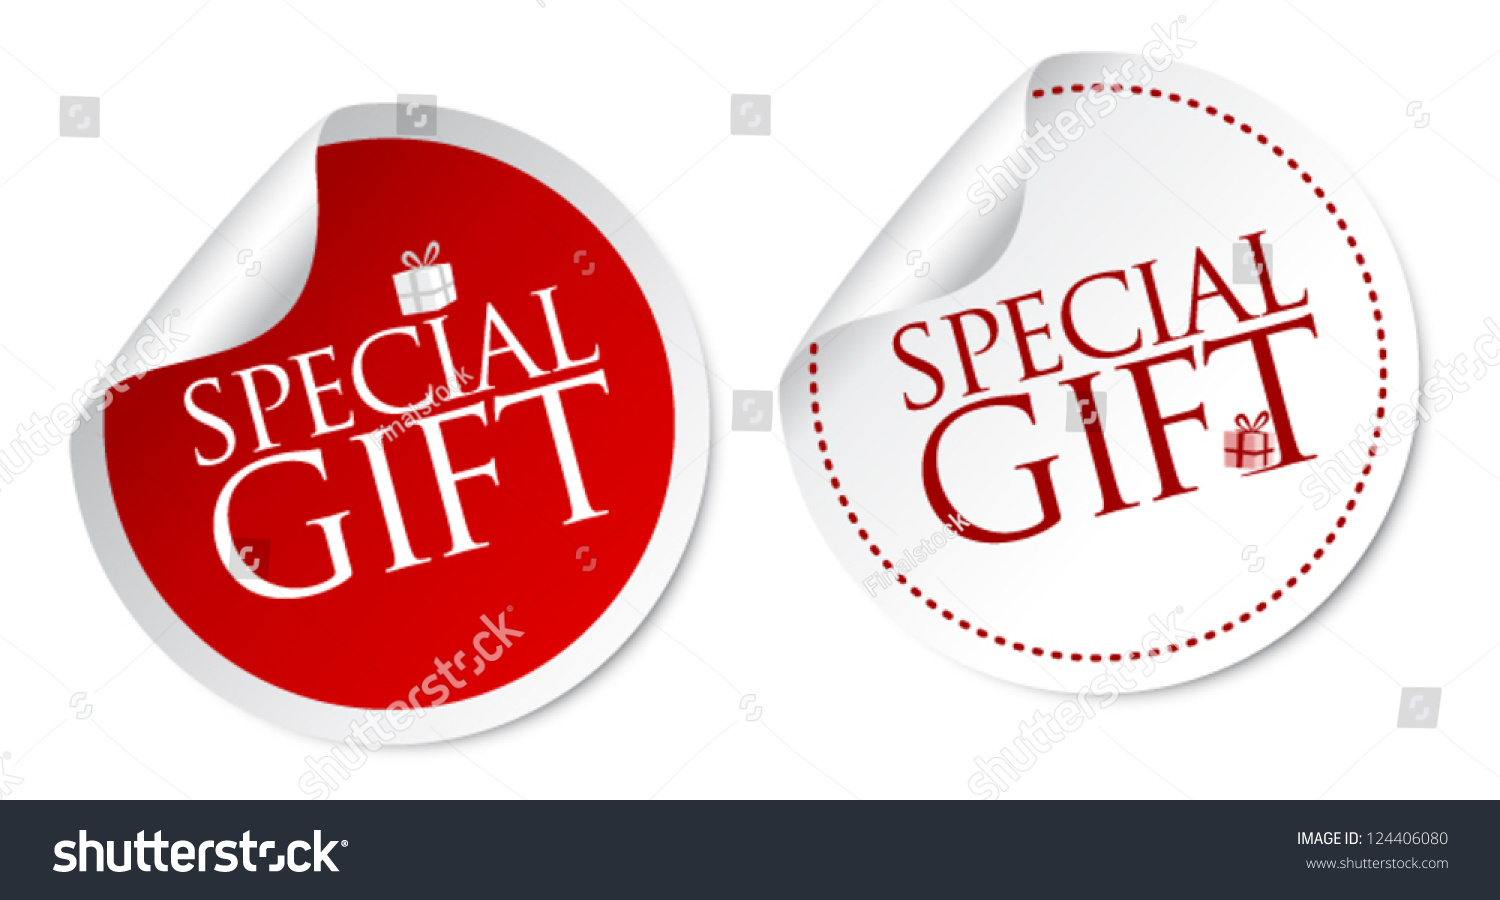 decide on a special gift for Gifts for special occasions to tickle the fancy of your nearest and dearest treat them to their perfect experience day or memorable gift, designed with them in mind.